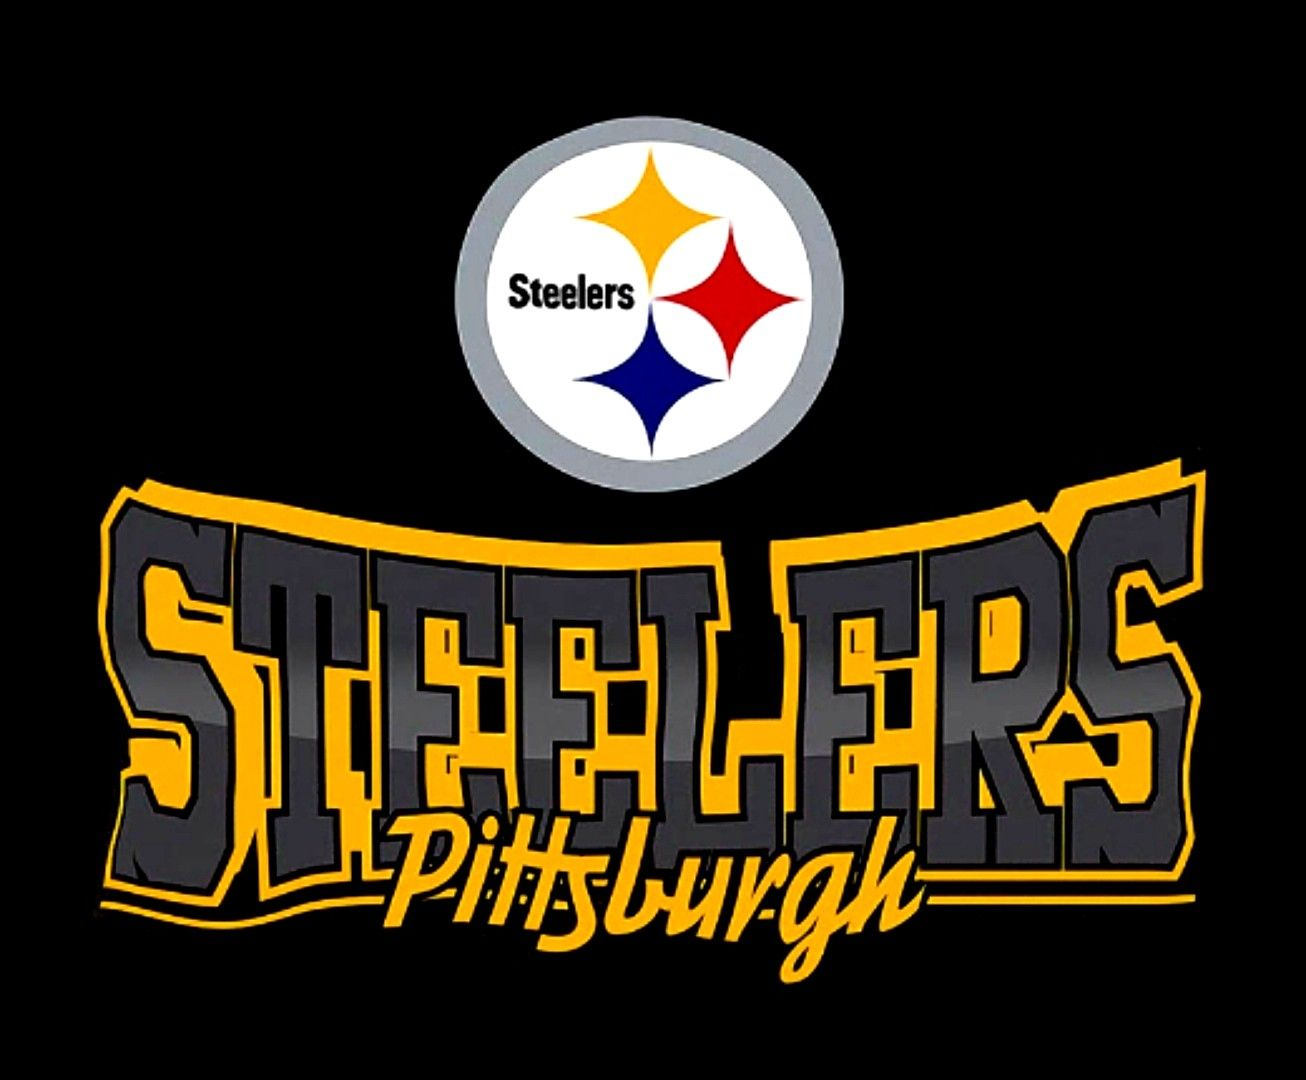 Pin by Ryan Funk on Pittsburgh Steelers, Pittsburgh